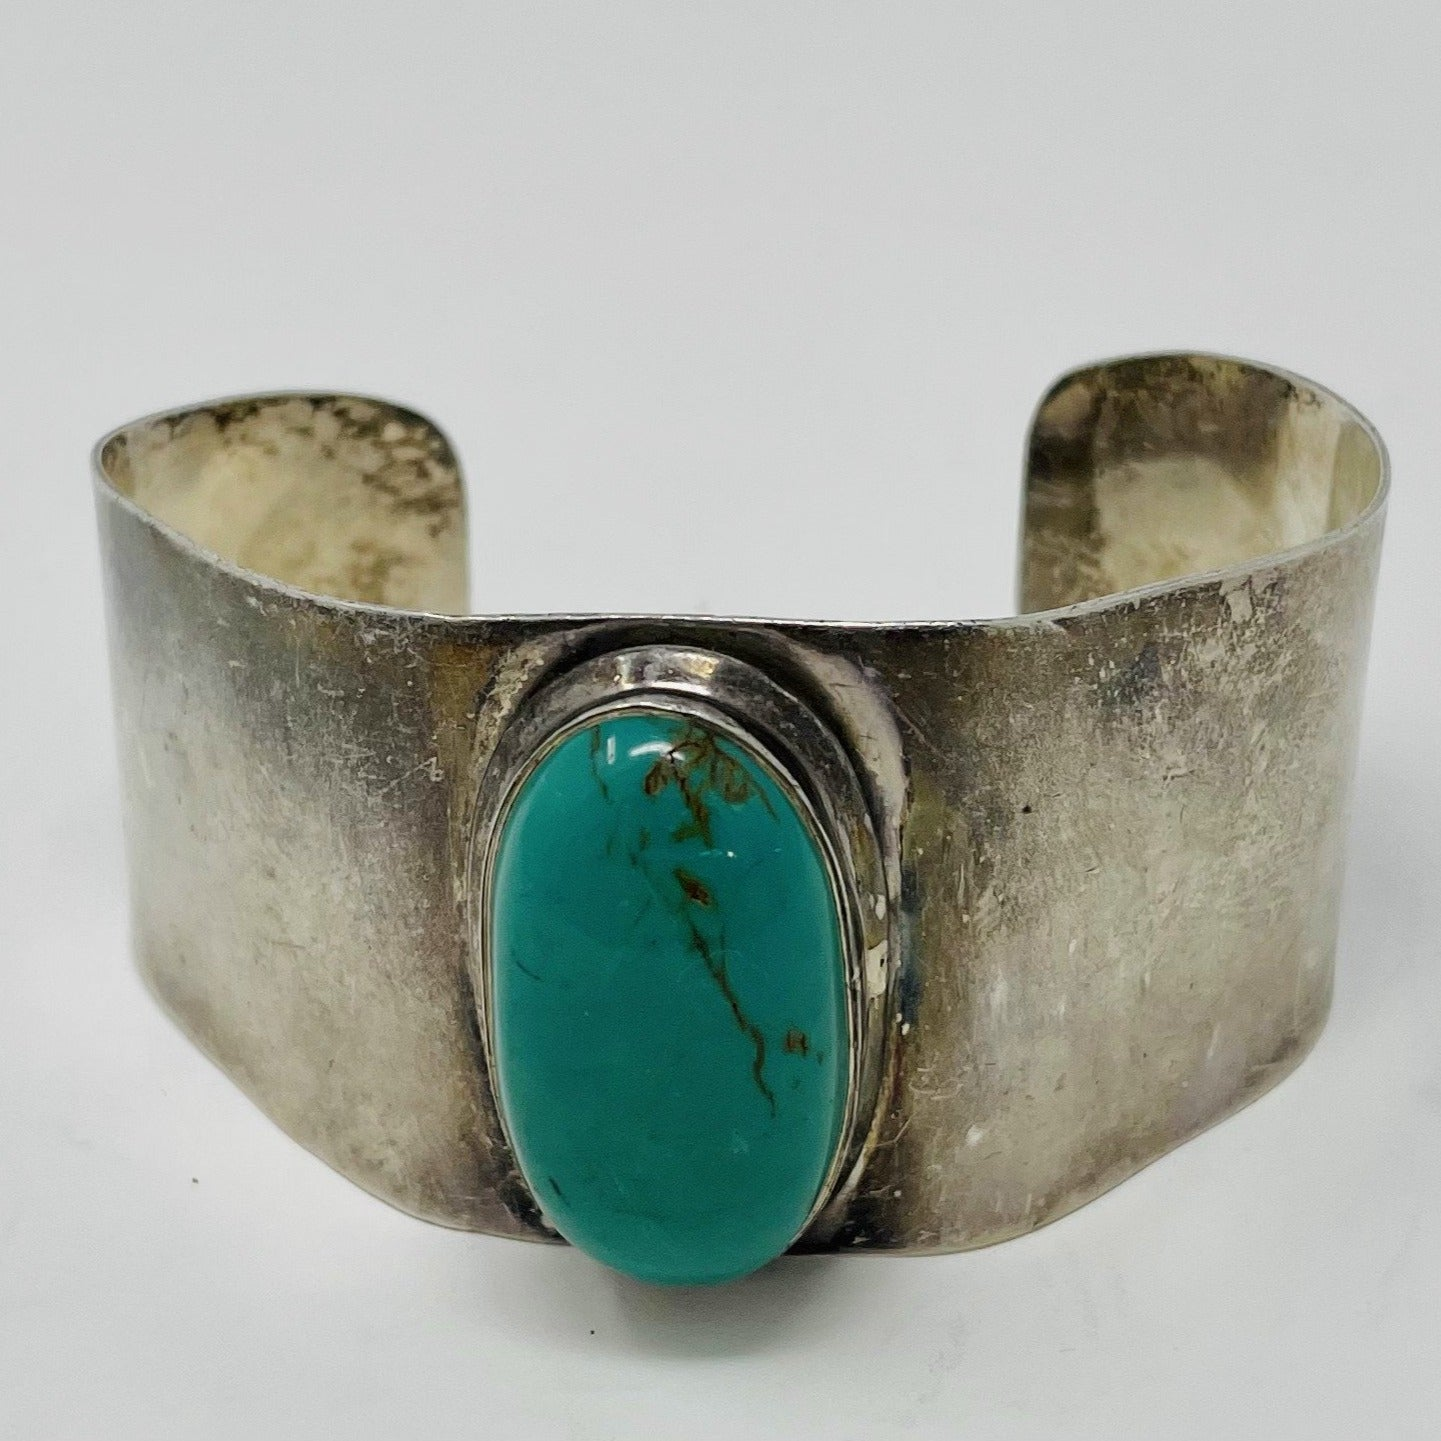 Silver Cuff with large turquoise stone